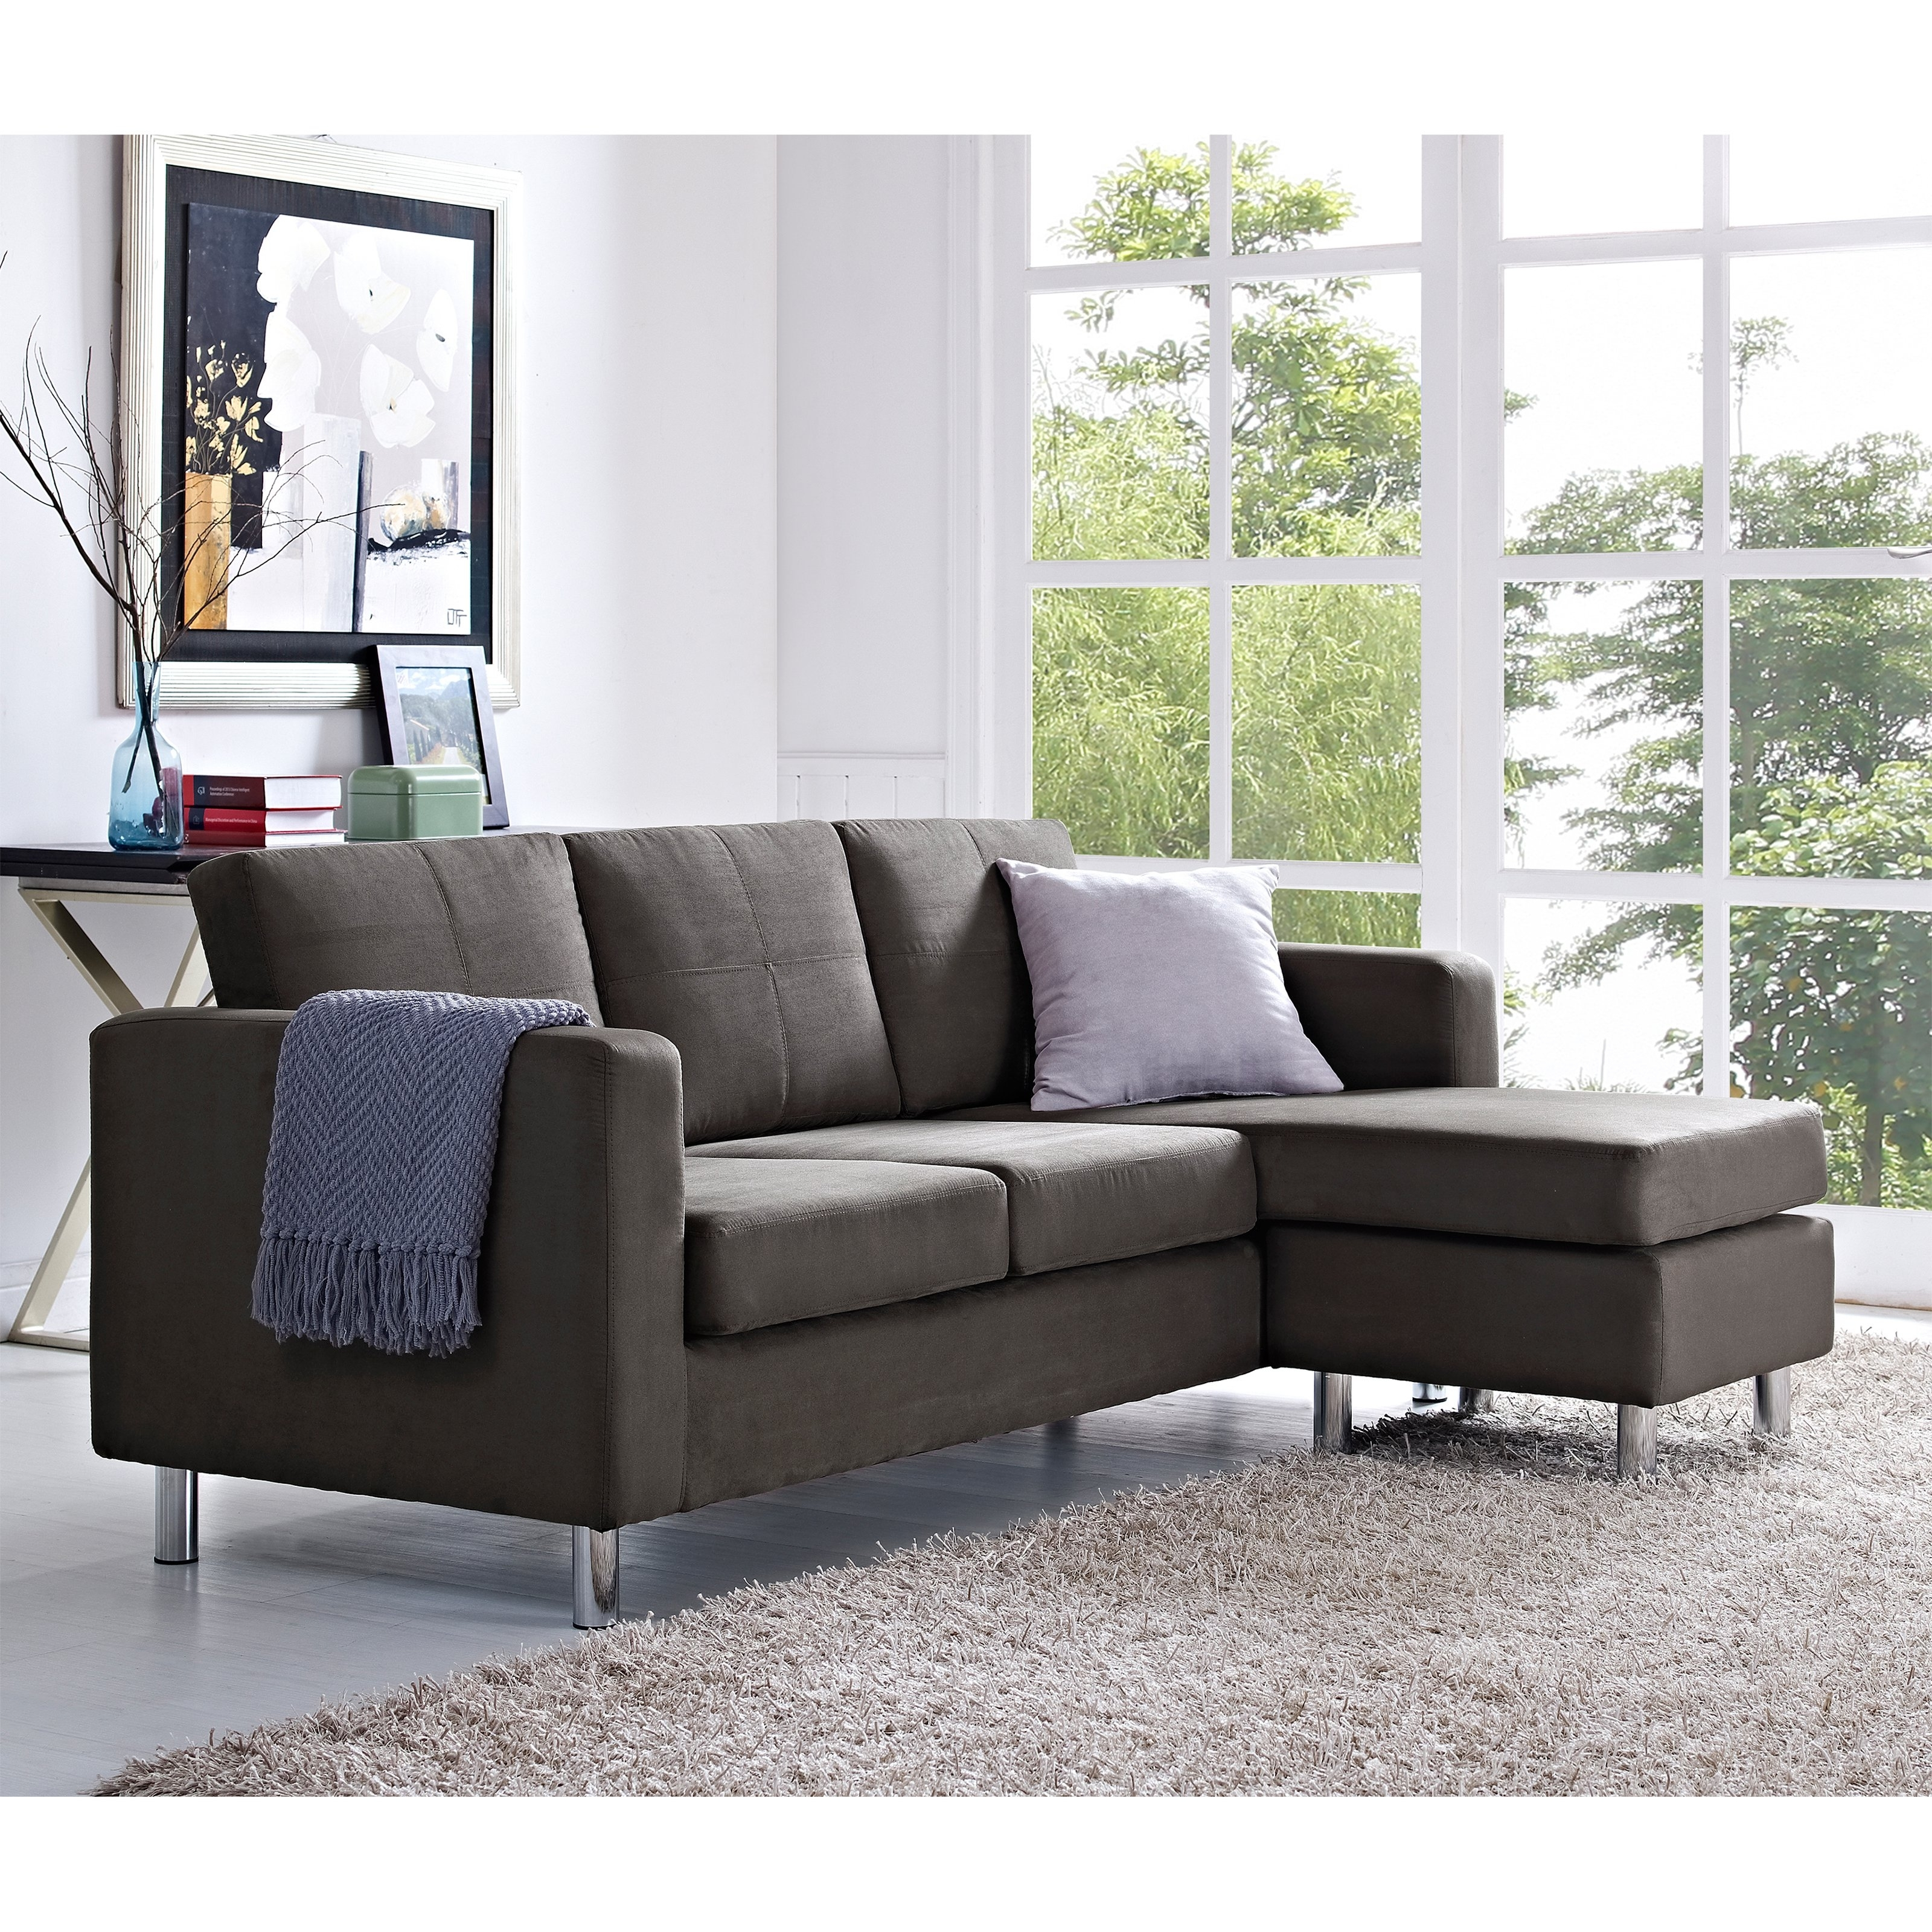 2019 Latest Evansville In Sectional Sofas